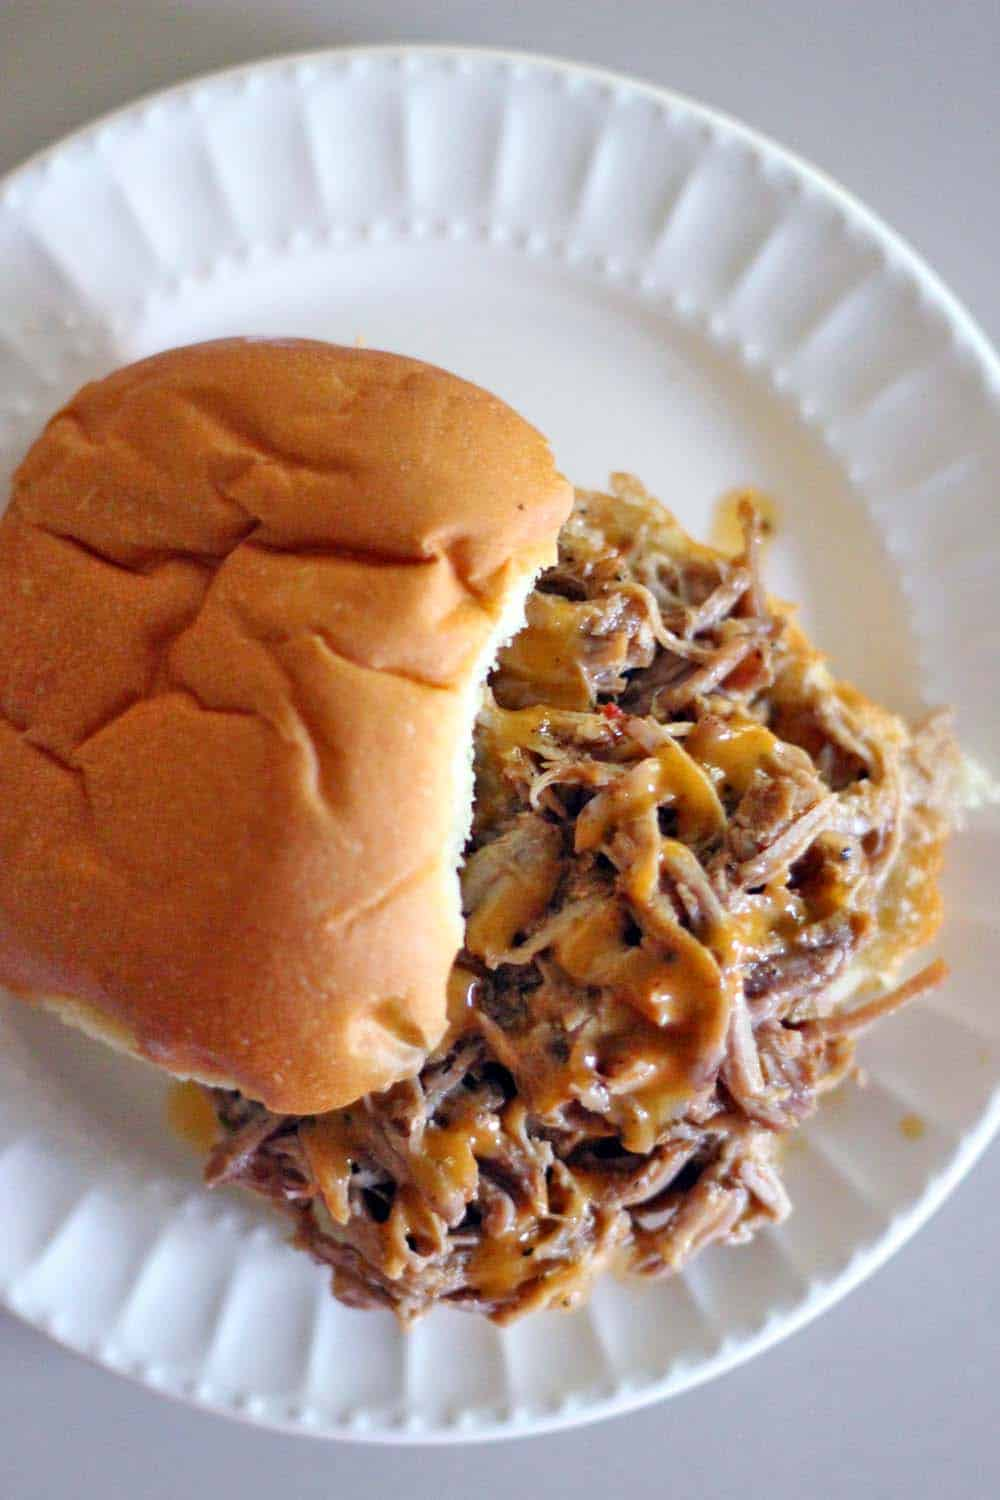 These easy slow cooker pulled pork sandwiches take only FIVE MINUTES of prep and use only FIVE INGREDIENTS- including buns! Great for feeding a crowd or for freezing for later meals.